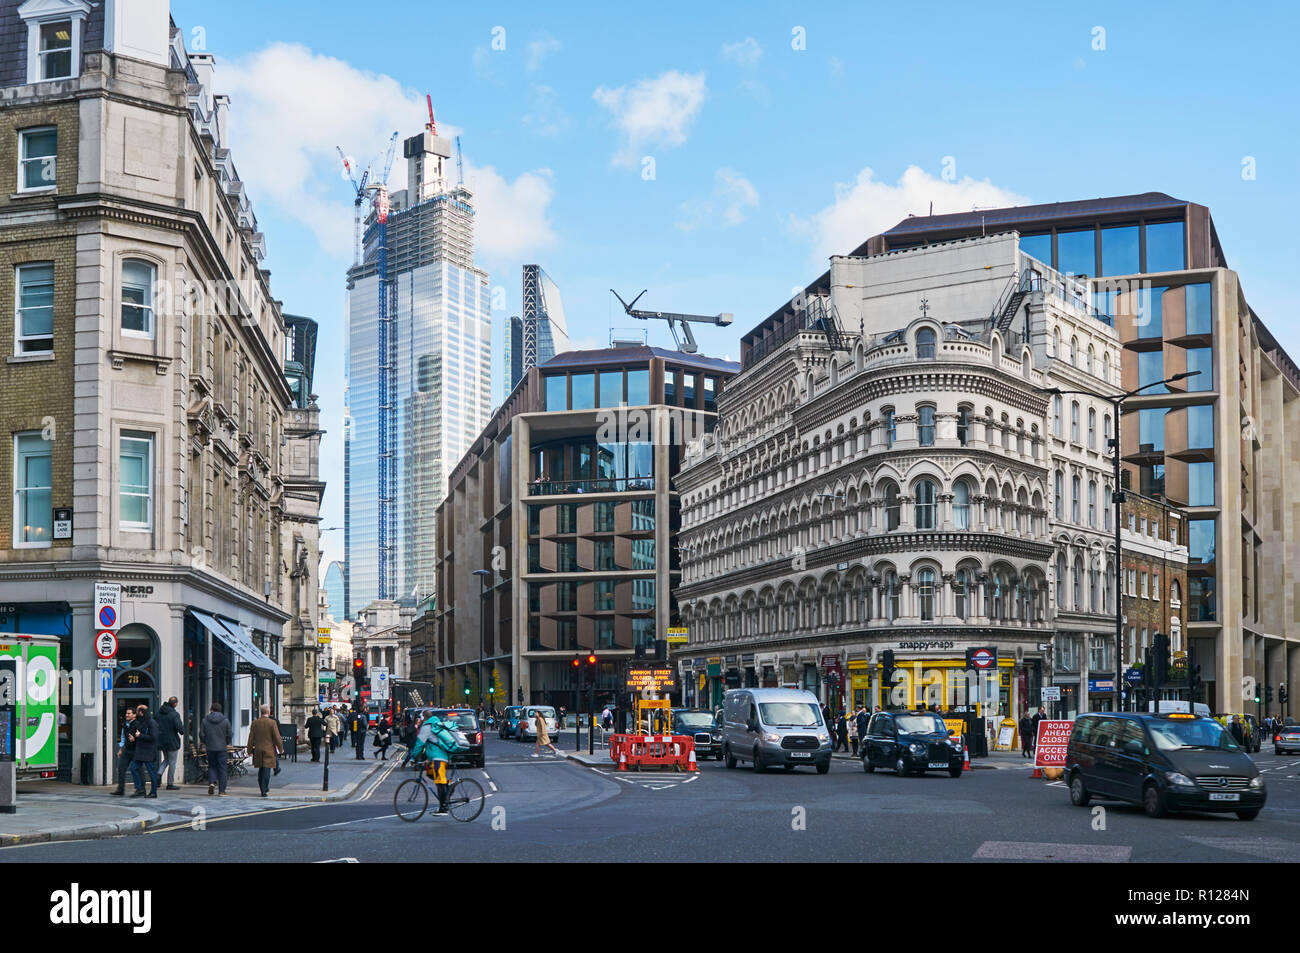 Mansion House in the City of London, UK, at the junction of Queen Victoria Street and Cannon Street - Stock Image